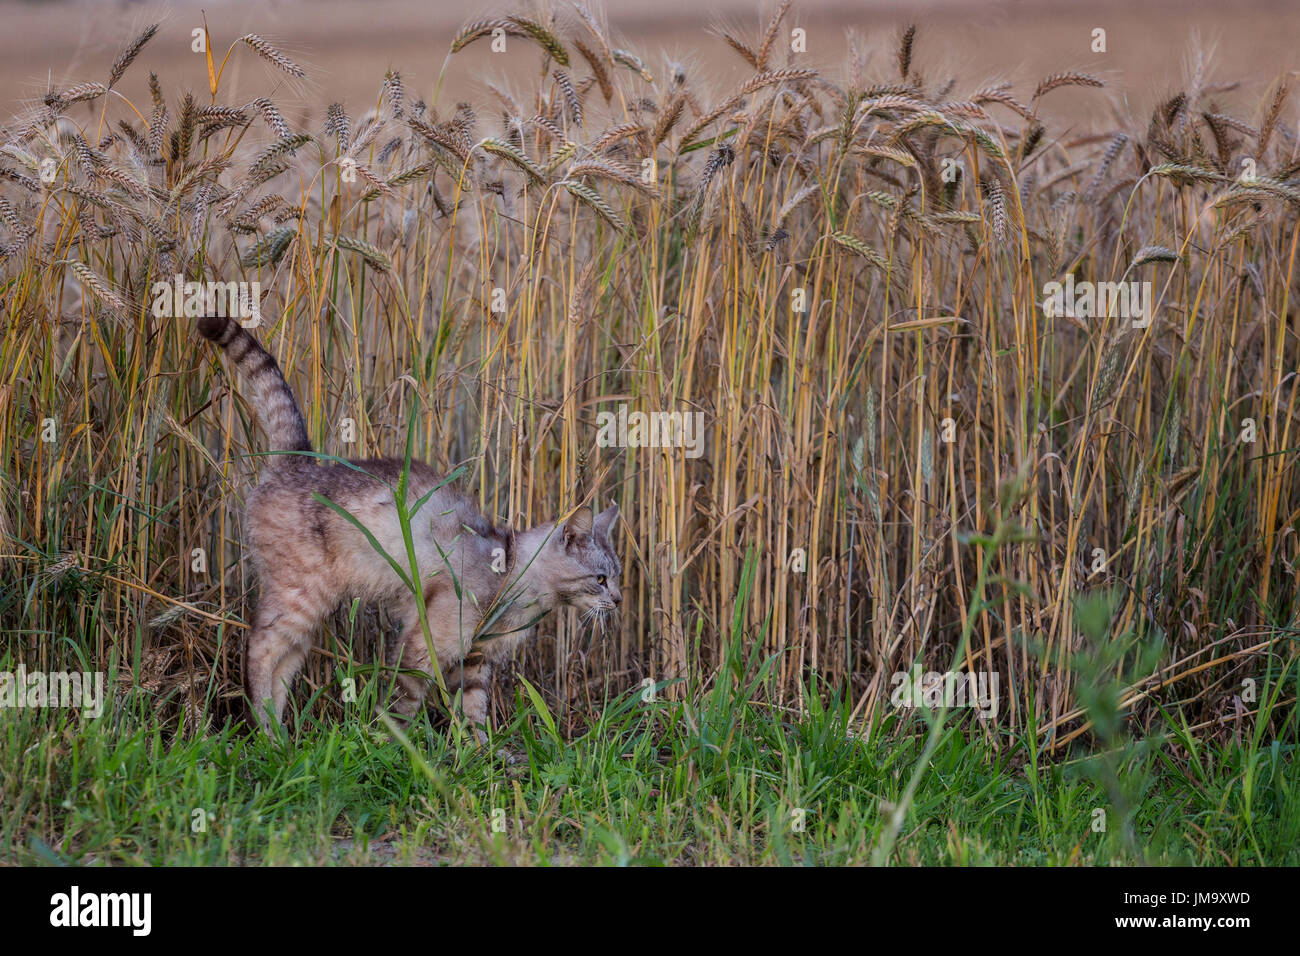 Vigilant cat with arched spine hunting mice at wheat field in summer evening - Stock Image